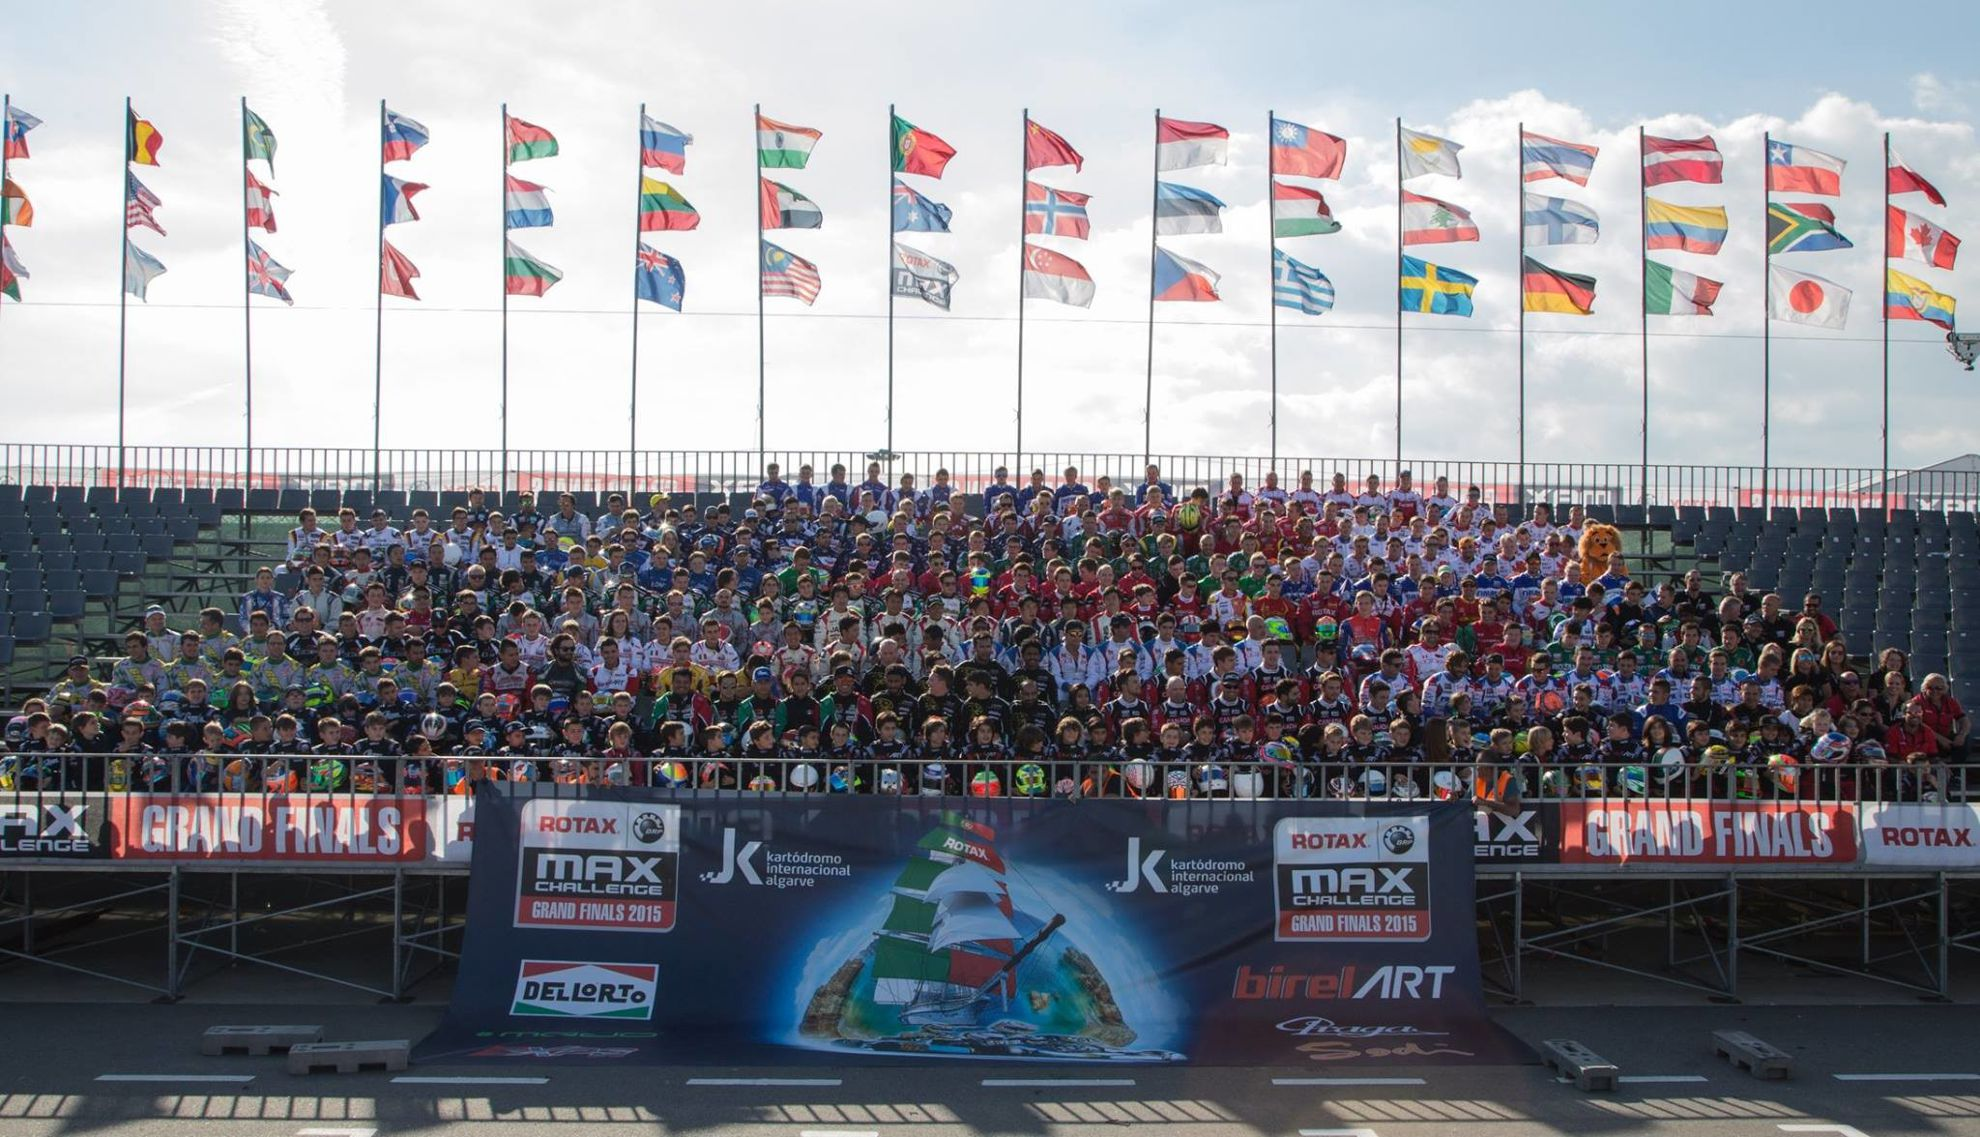 rotax-world-karting-championship